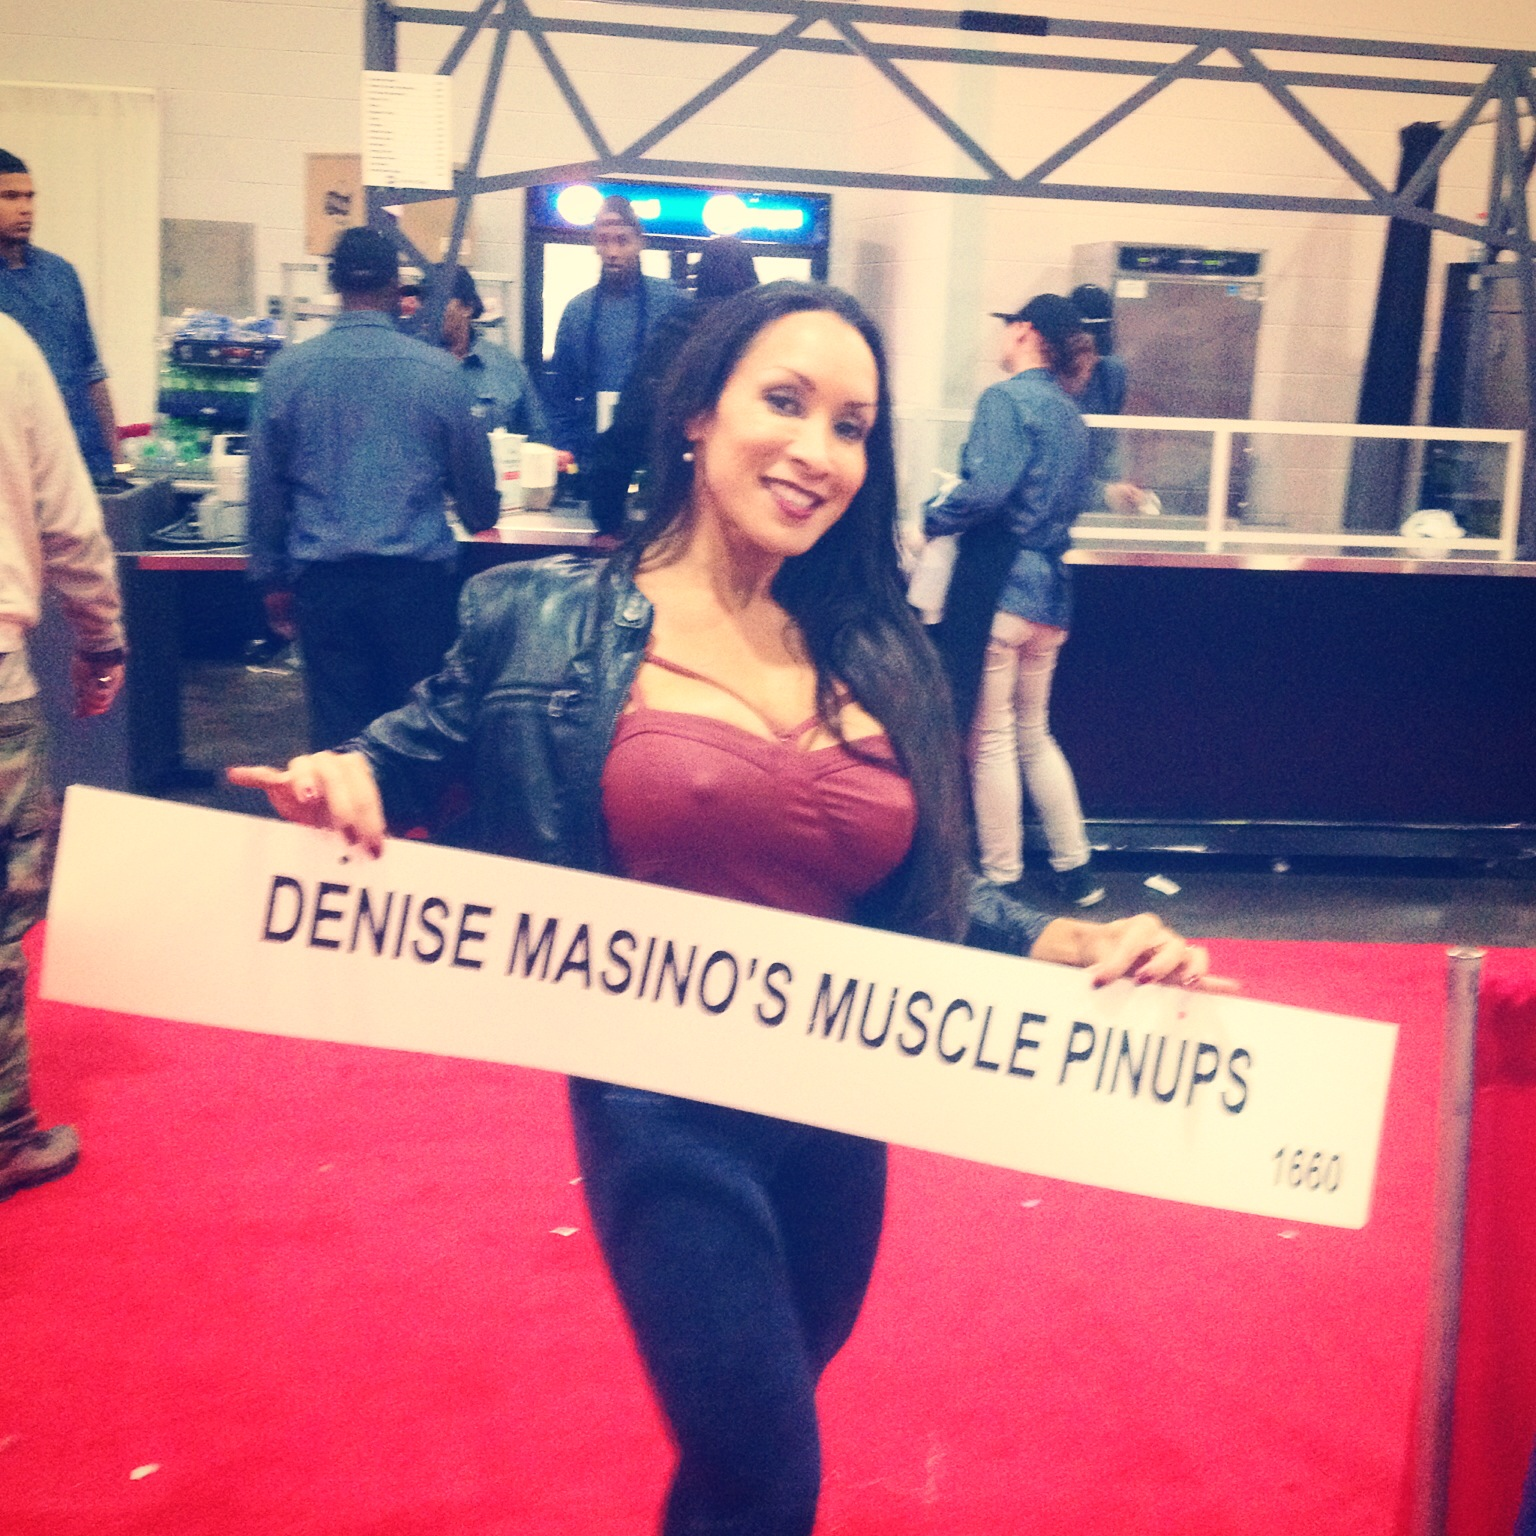 Denise Masino Muscle Pinup